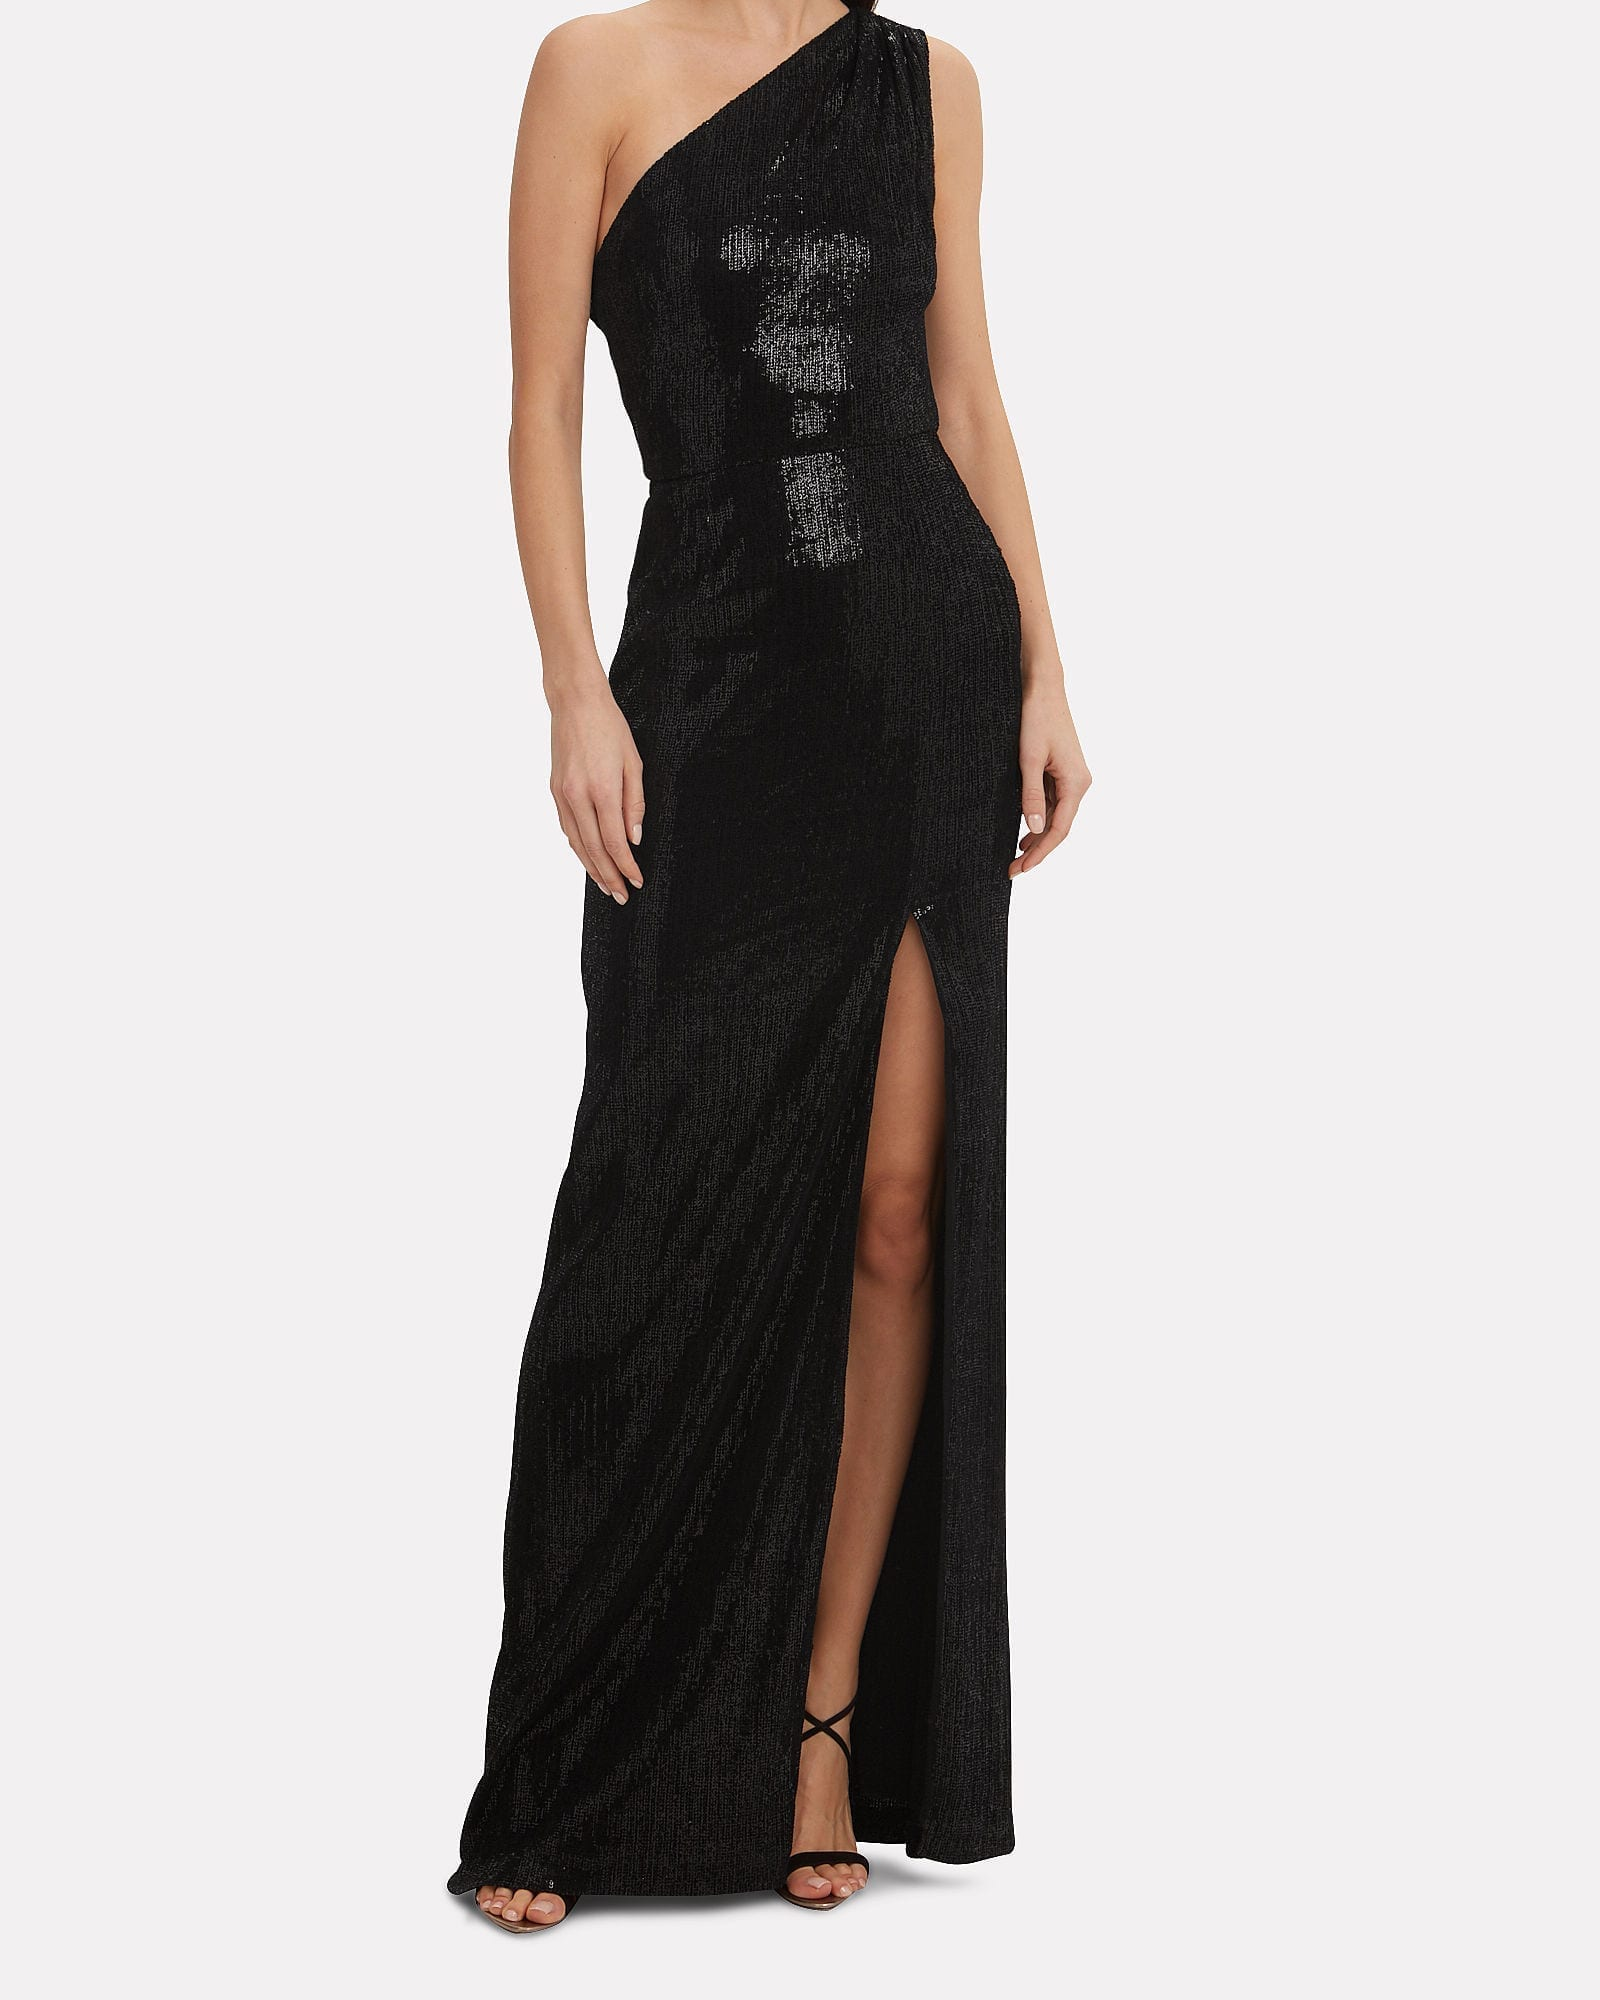 Black One Shoulder Sequin Dress